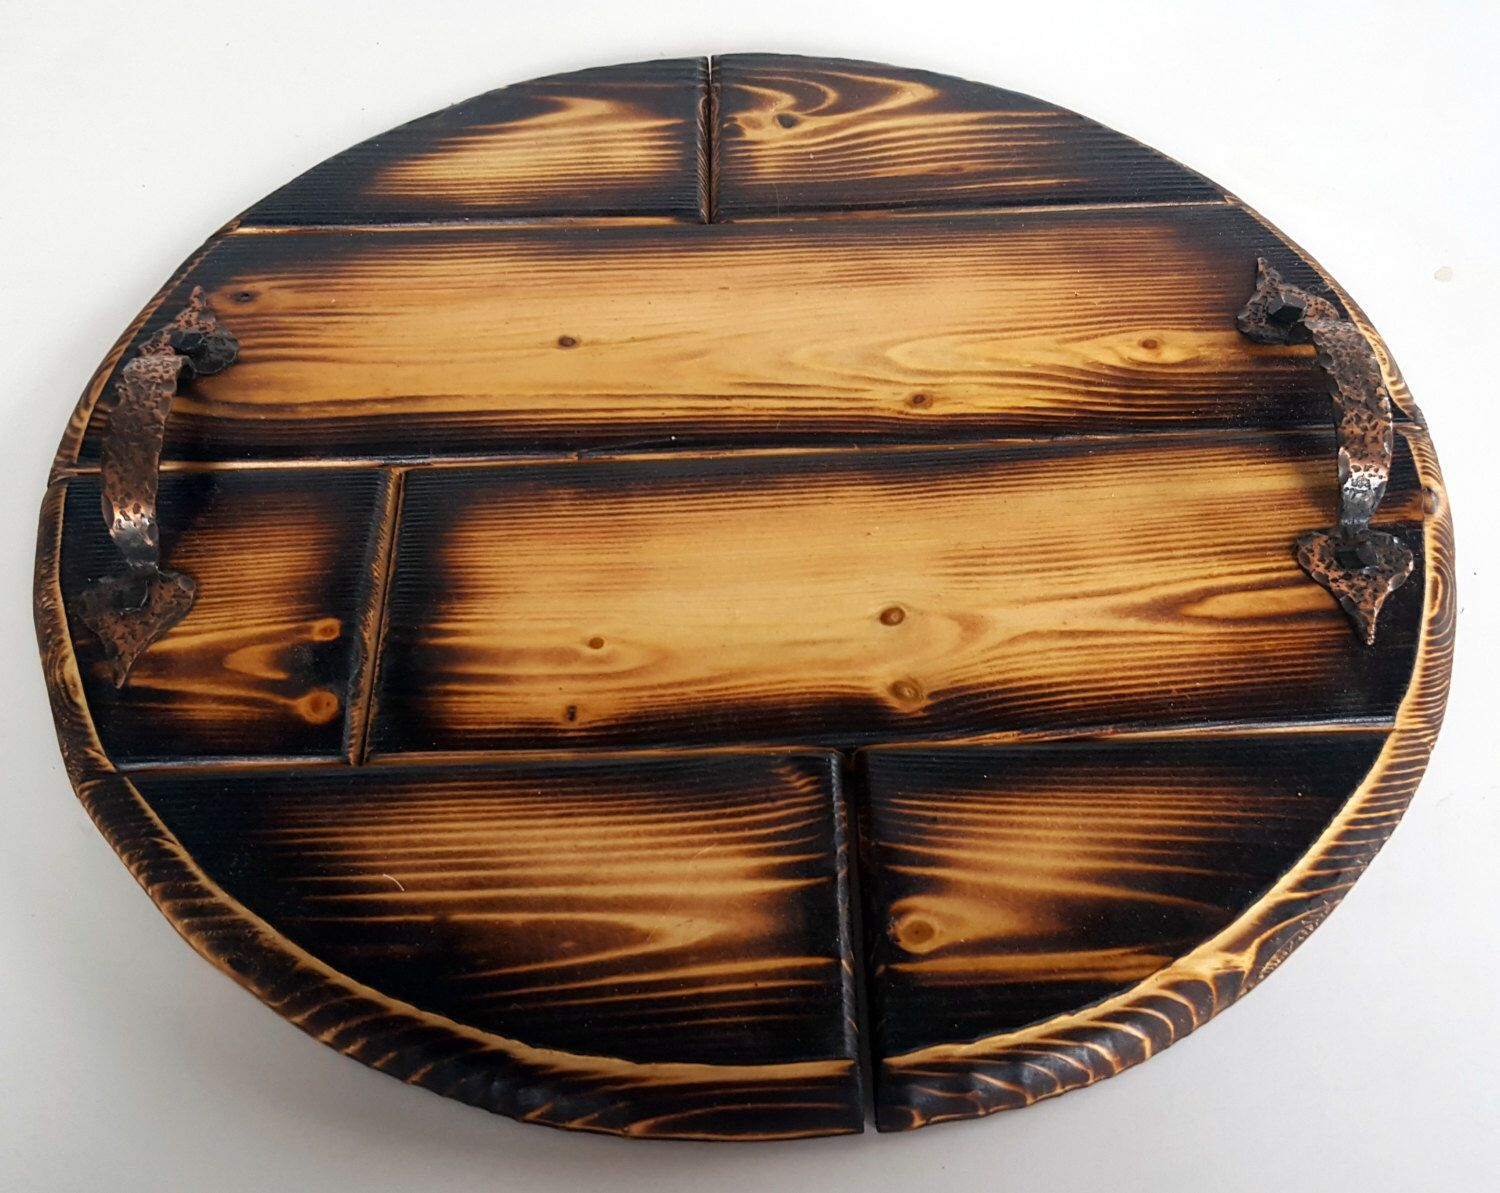 Ottoman Trays Home Decor Fair Wood Burned Ottoman Tray Round Wooden Tray Coffee Table Tray For Inspiration